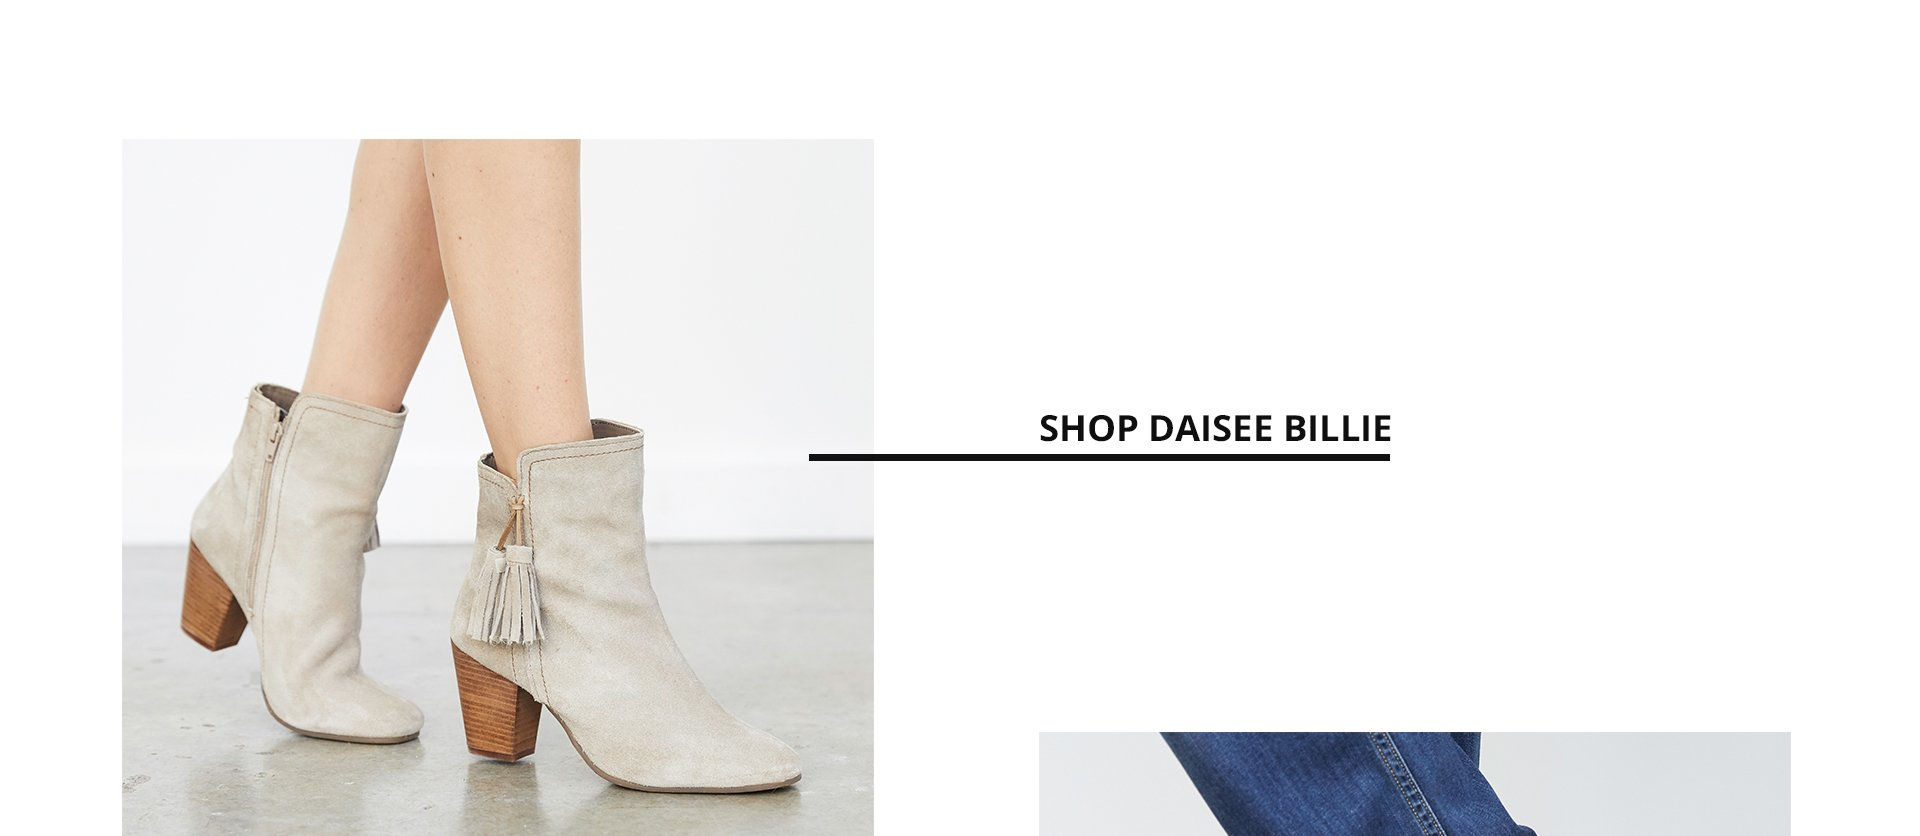 Shop Daisee Billie